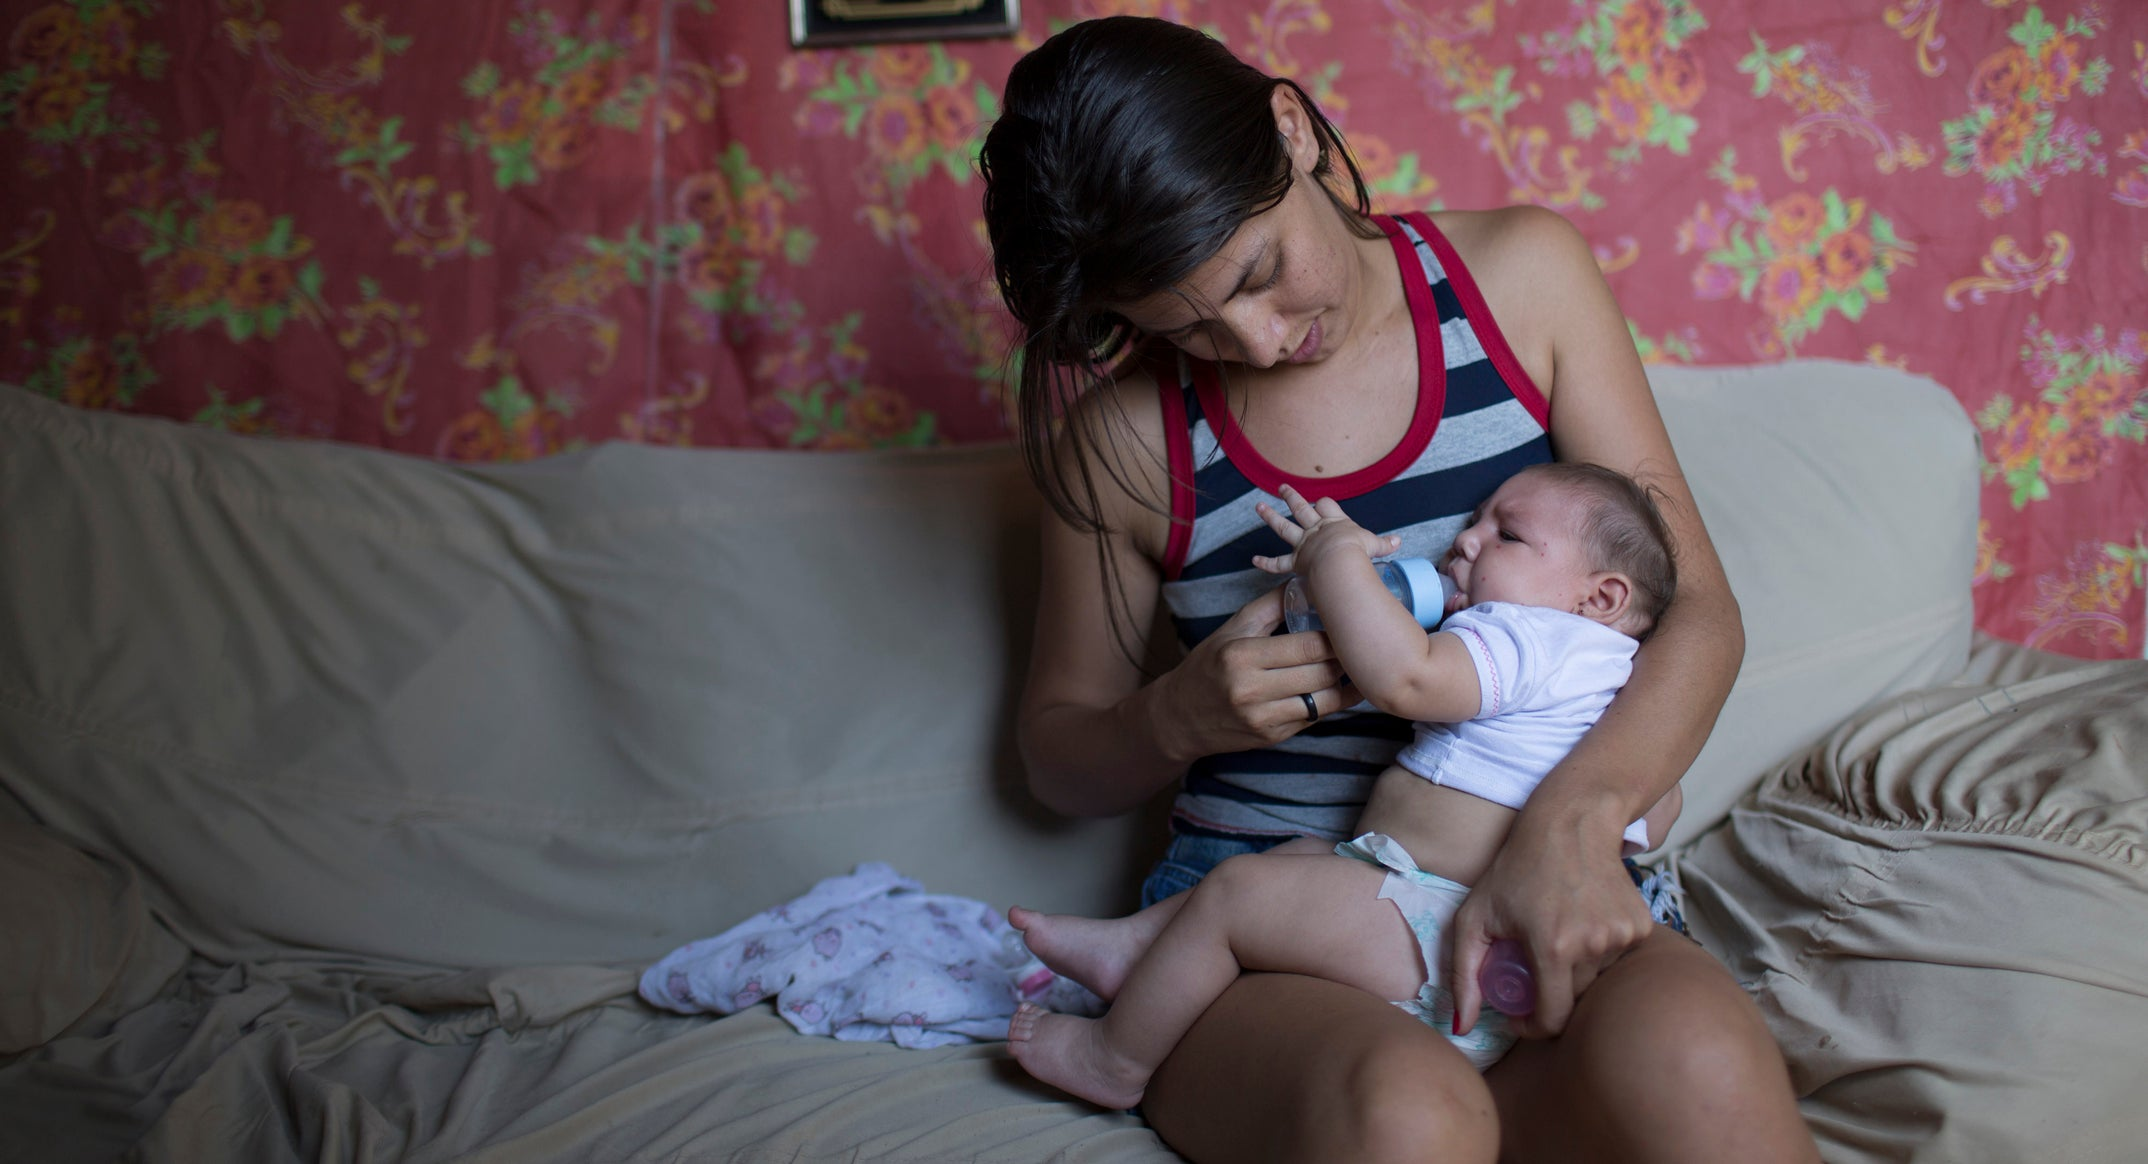 New Research Suggests Zika Can Cross the Placental Barrier